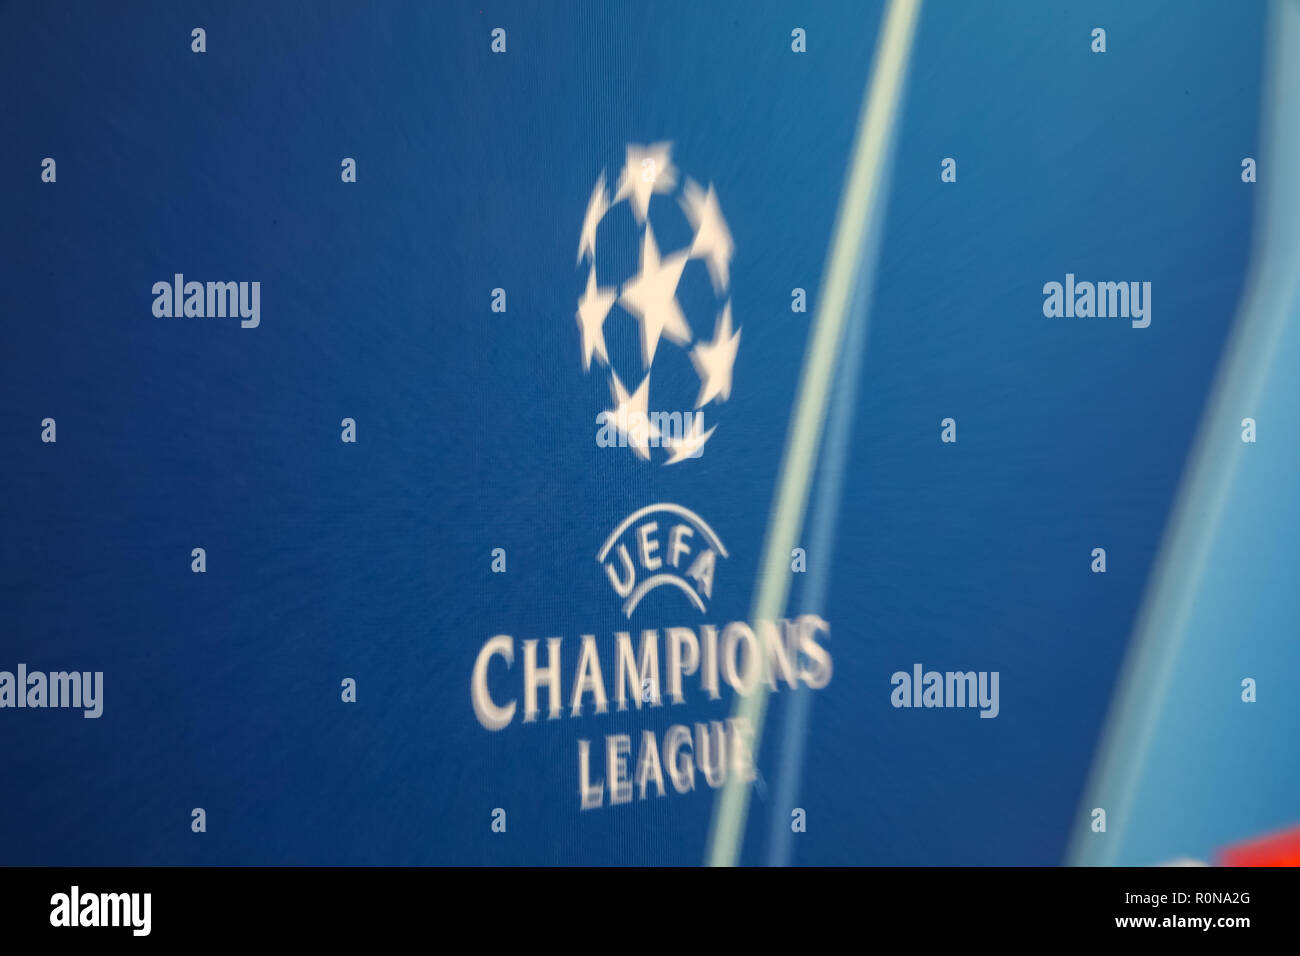 page 3 champions league logo high resolution stock photography and images alamy alamy